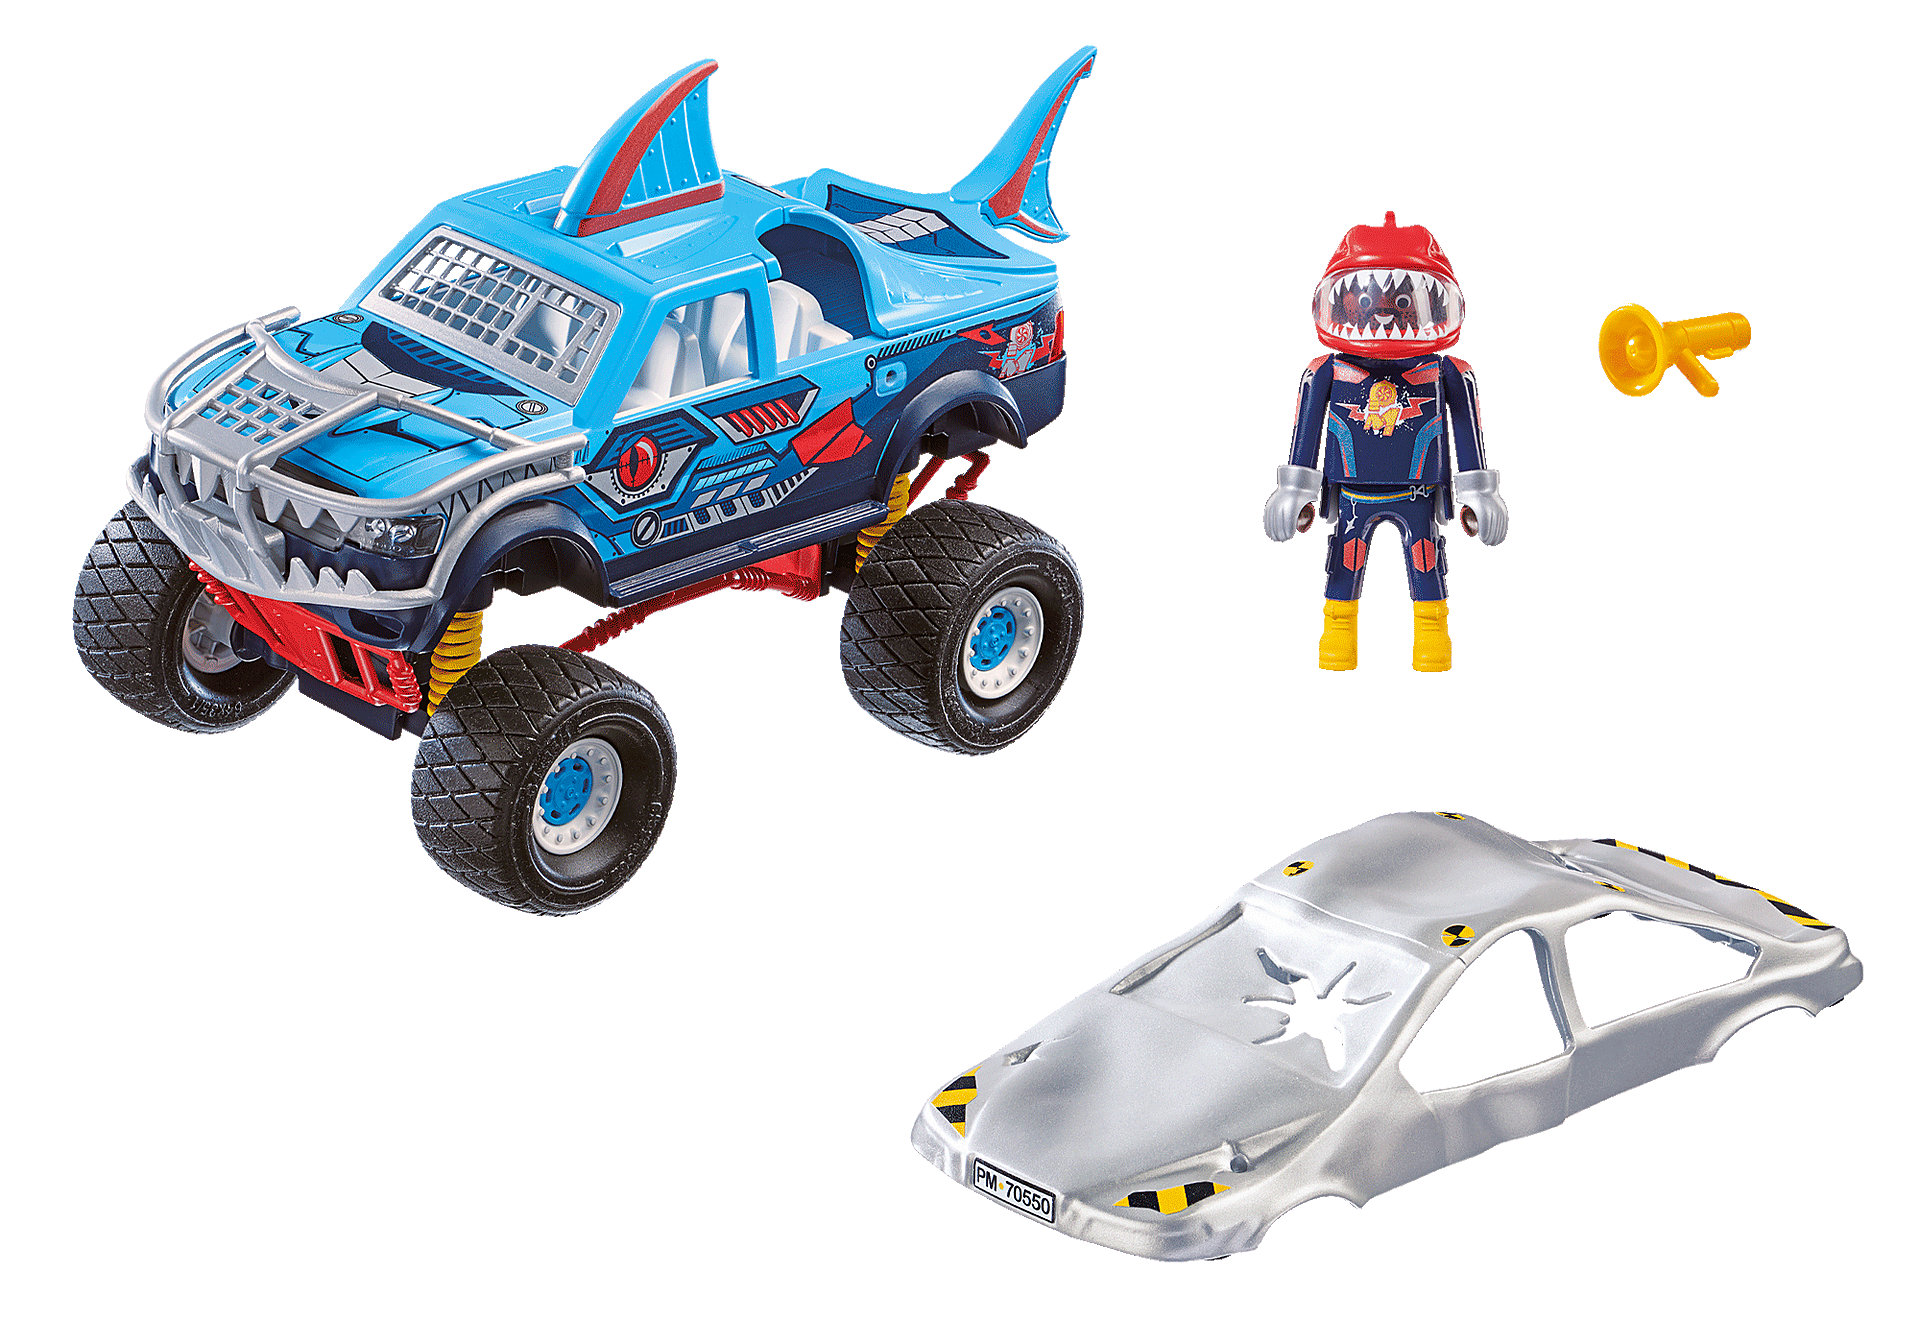 70550 Monster Truck Squalo zoom image3